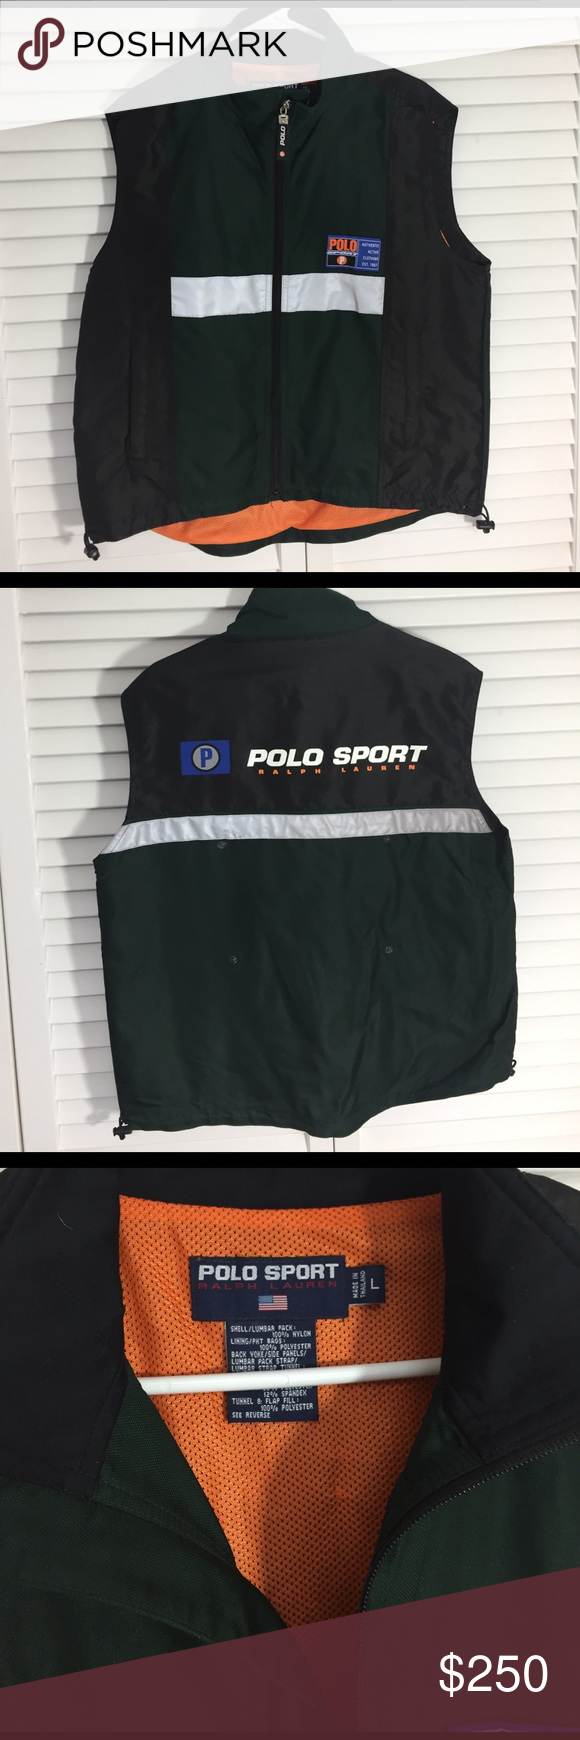 Vintage Ralph Lauren Reflective Polo Sport Vest Rare Vintage Reflective Polo Sport Vest ... A cherished piece of wardrobe, saved from my clubbing and rave days... Used condition, very well cared for. Some signs of light use, including a few minimal skuffs on the reflector area (pictured).  Otherwise excellent condition. This vest represents a very special time in EDM history, and if you were a raver in the 90s, you understand! The price is reflective of its rarity, and sentimental value…